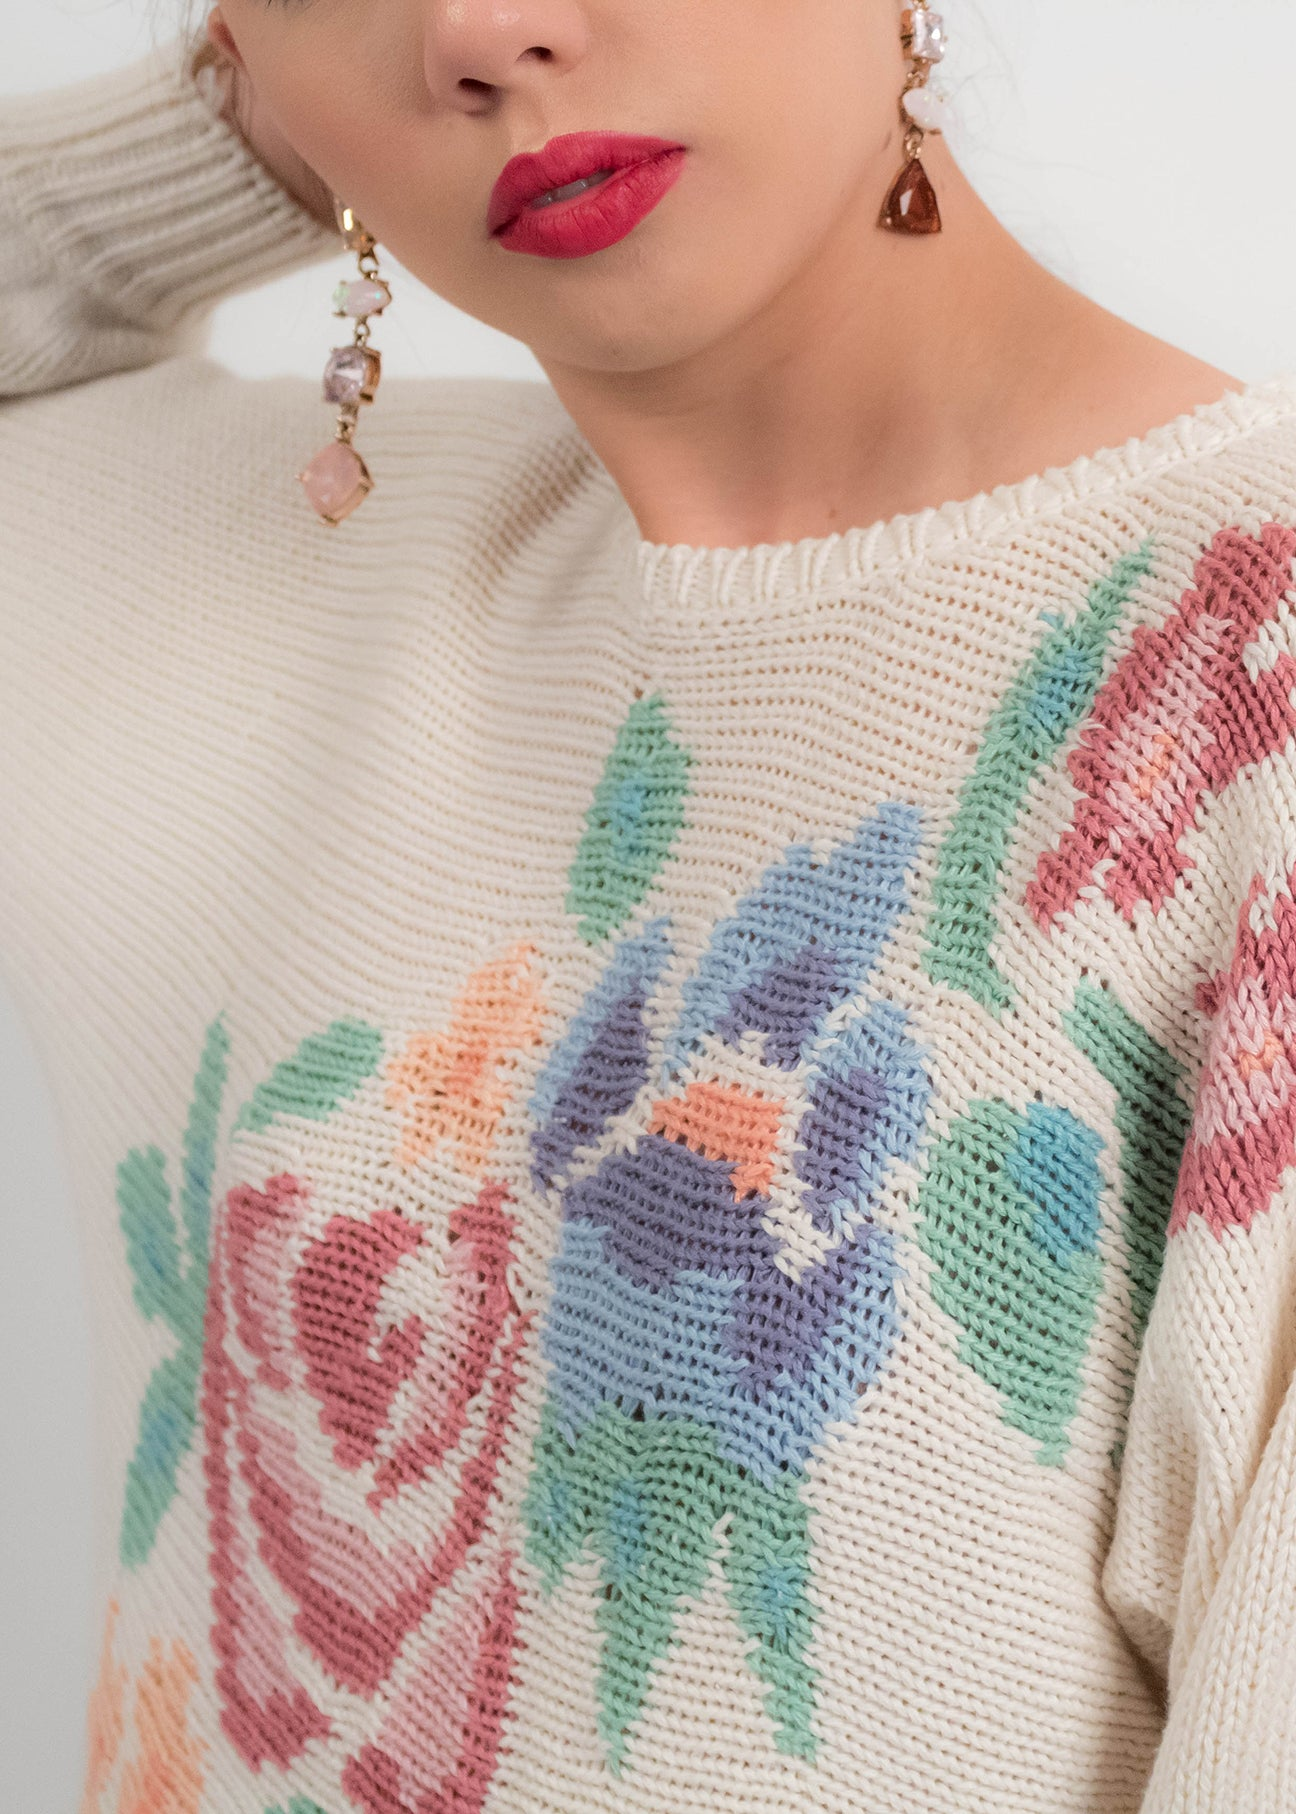 80s Hand Loomed Knit Floral Sweater